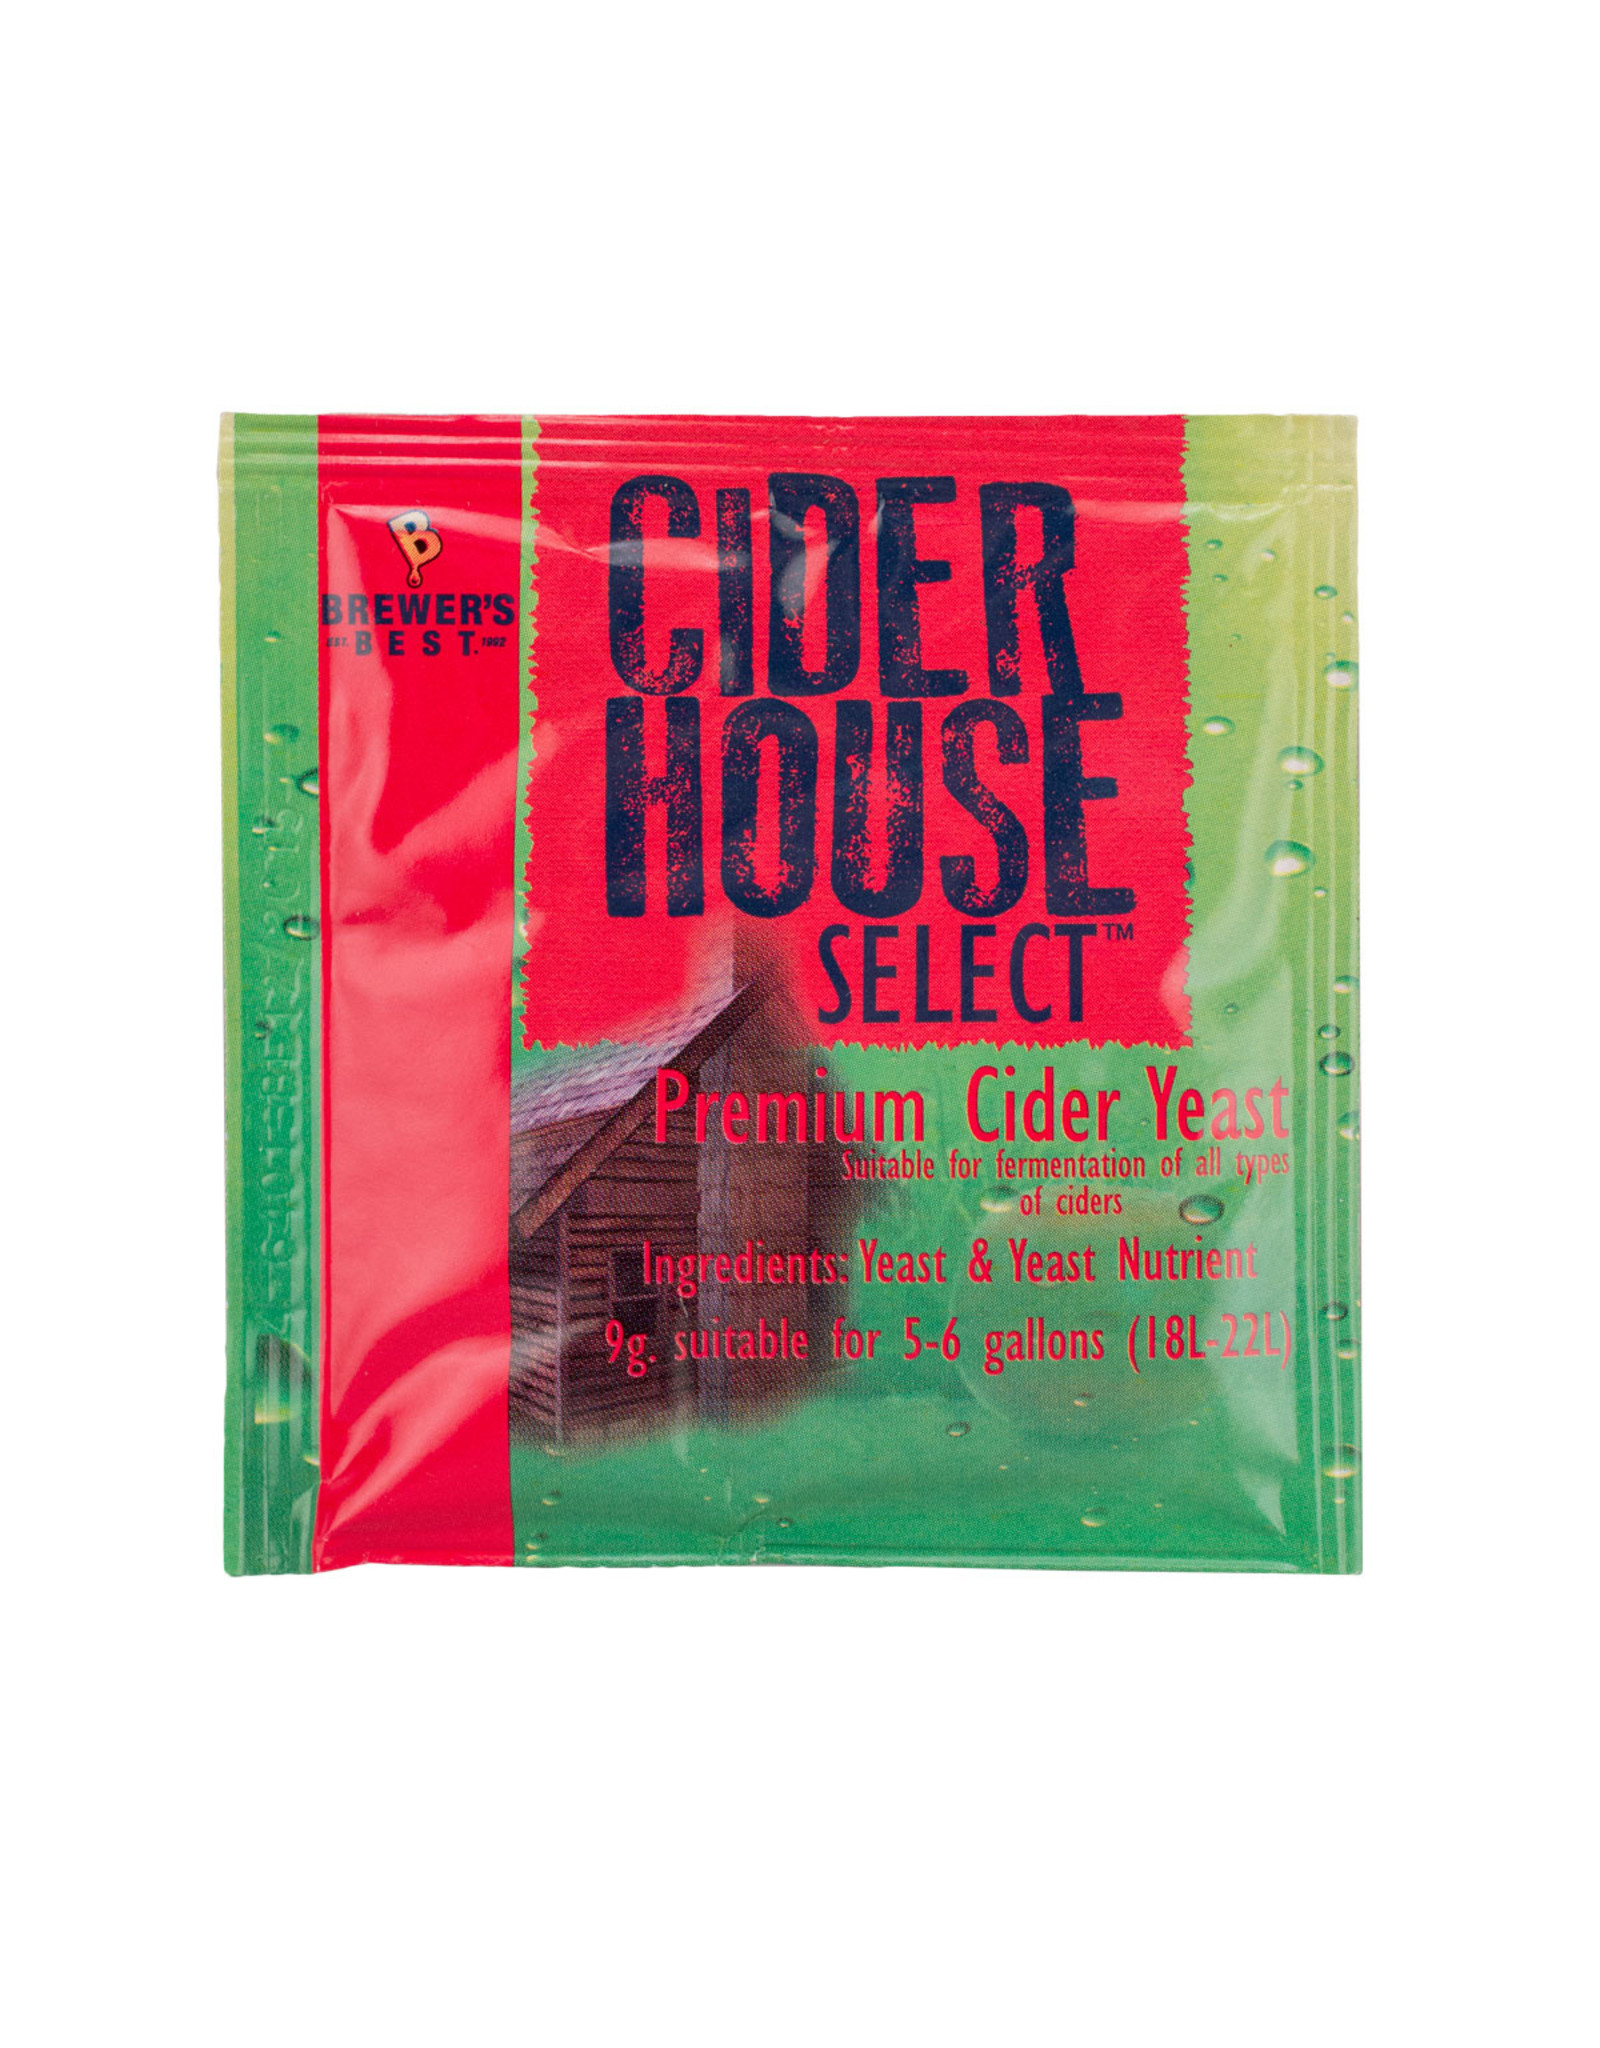 Cider House Select Cider Yeast